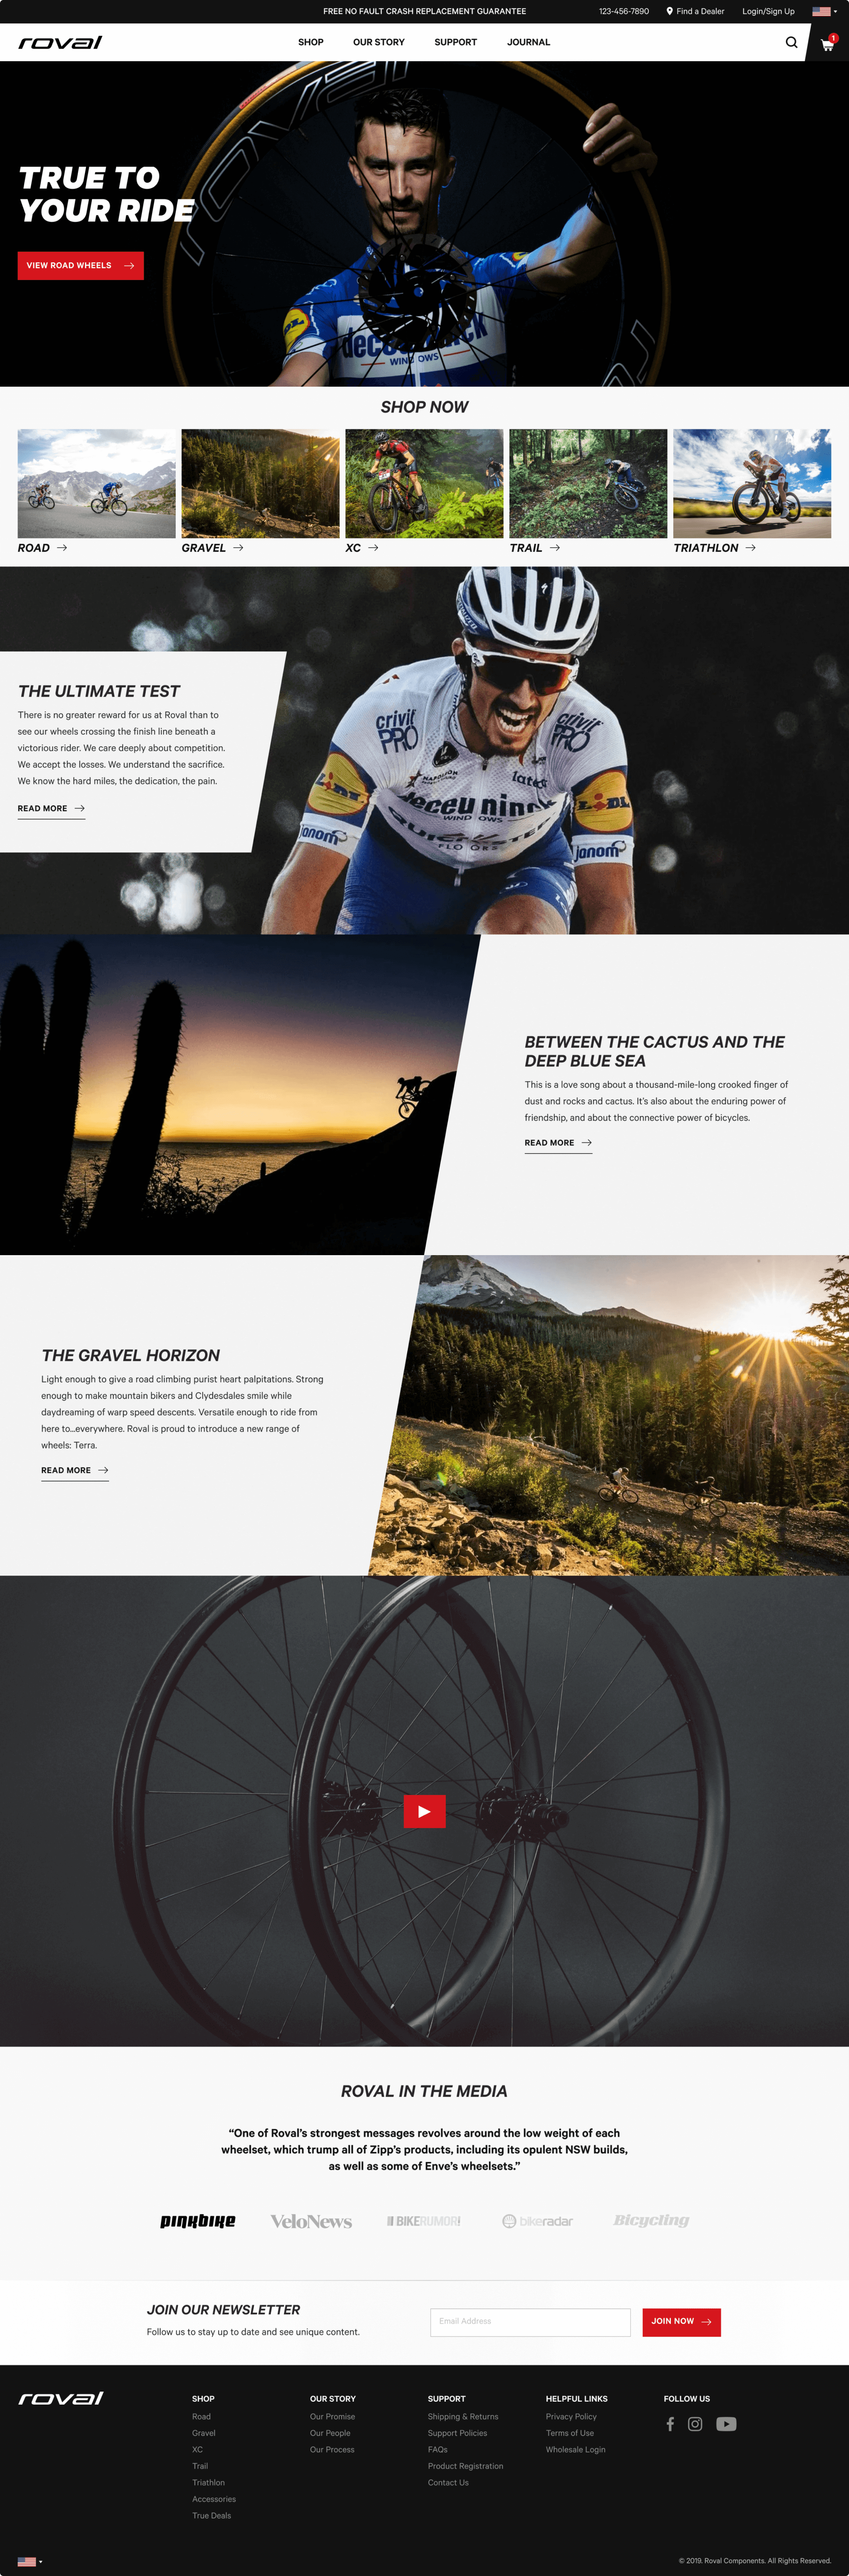 The final design for the homepage of Roval's website featuring different types of riders and journal articles.